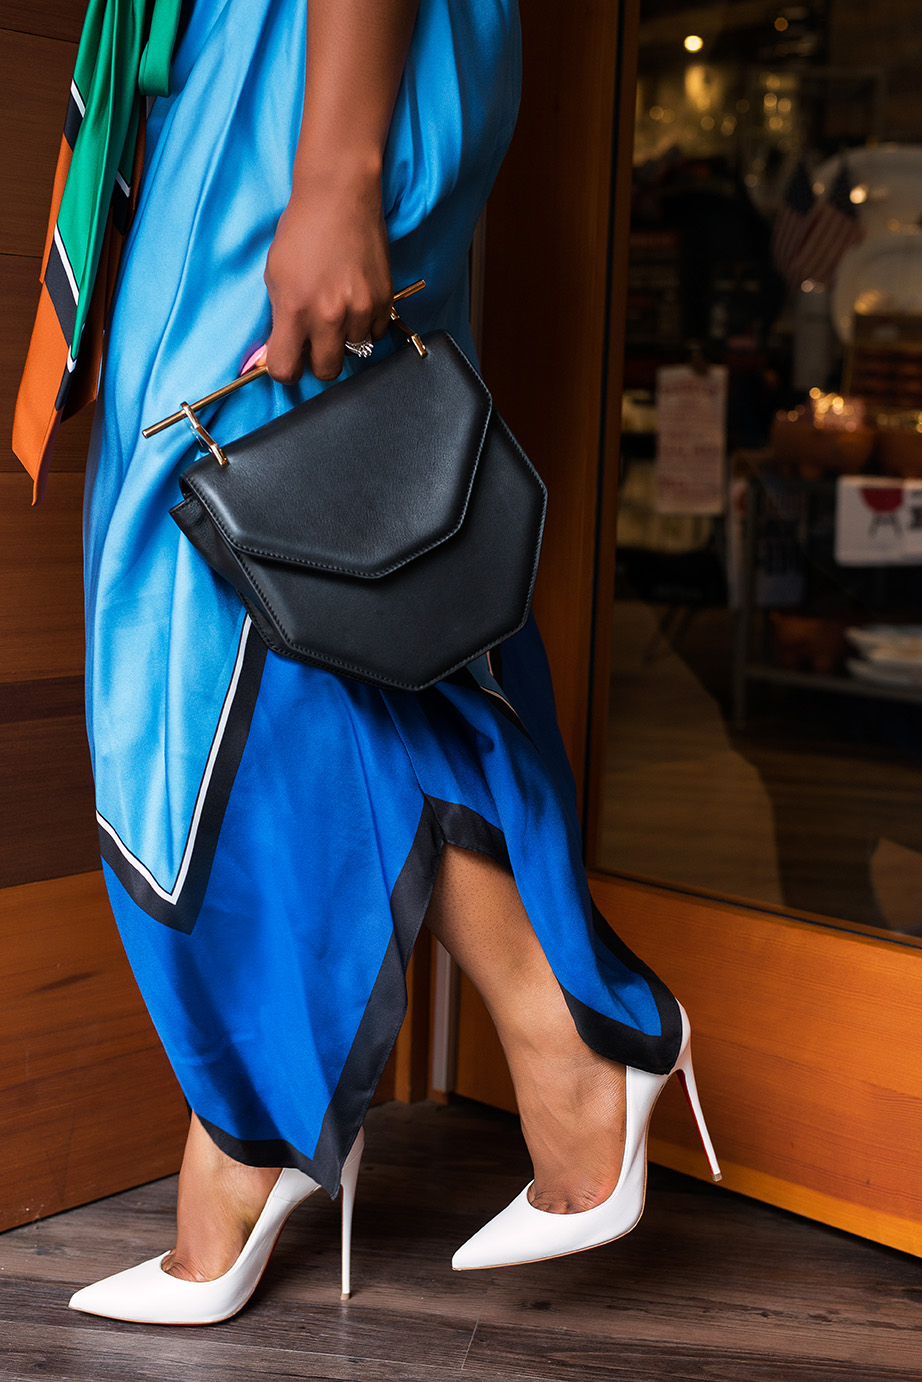 M2Malletier bag, Christian Louboutin white pumps, www.jadore-fashion.com